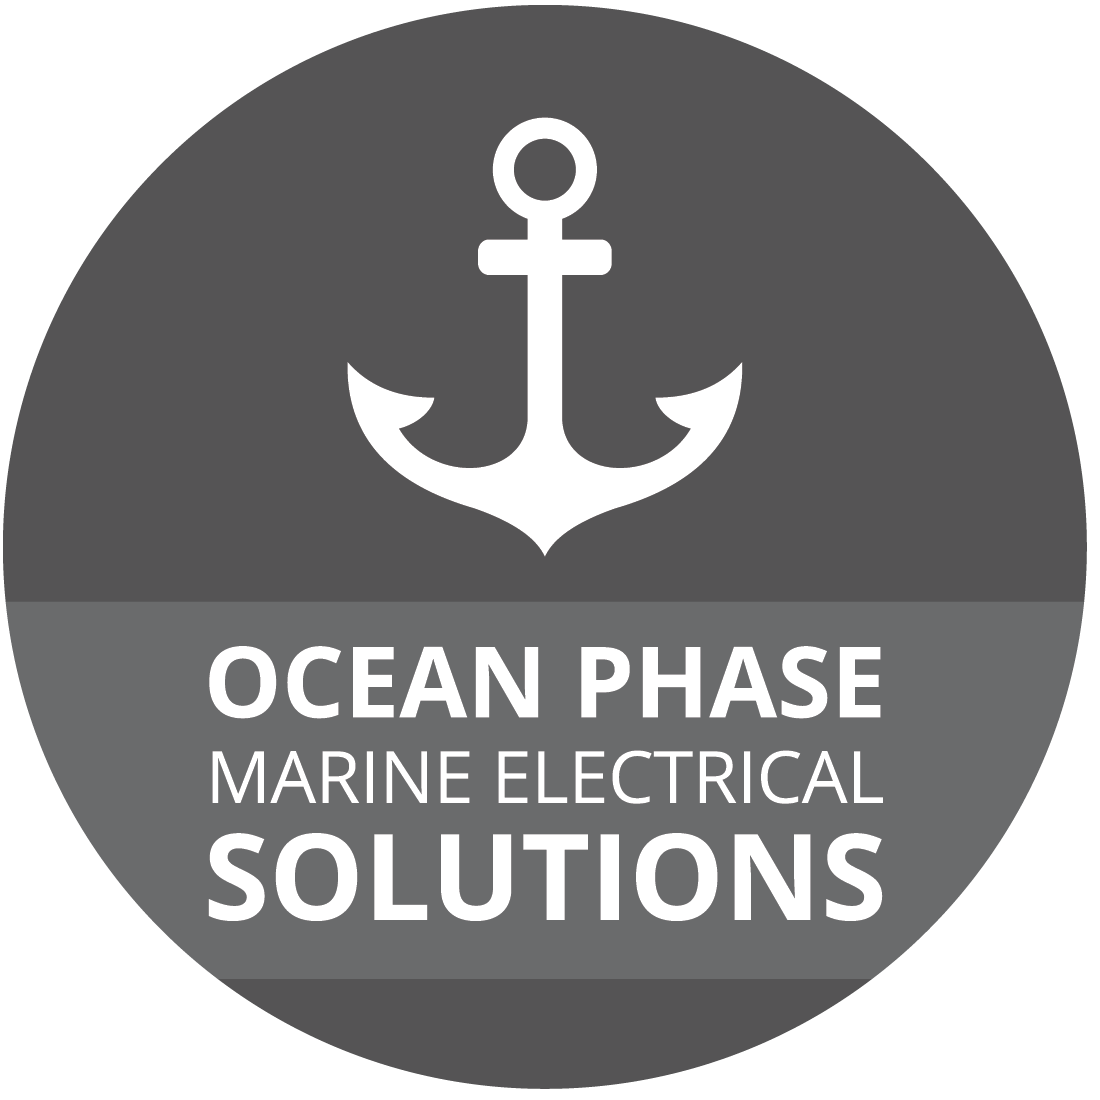 Ocean Phase Marine Electrical Solutions